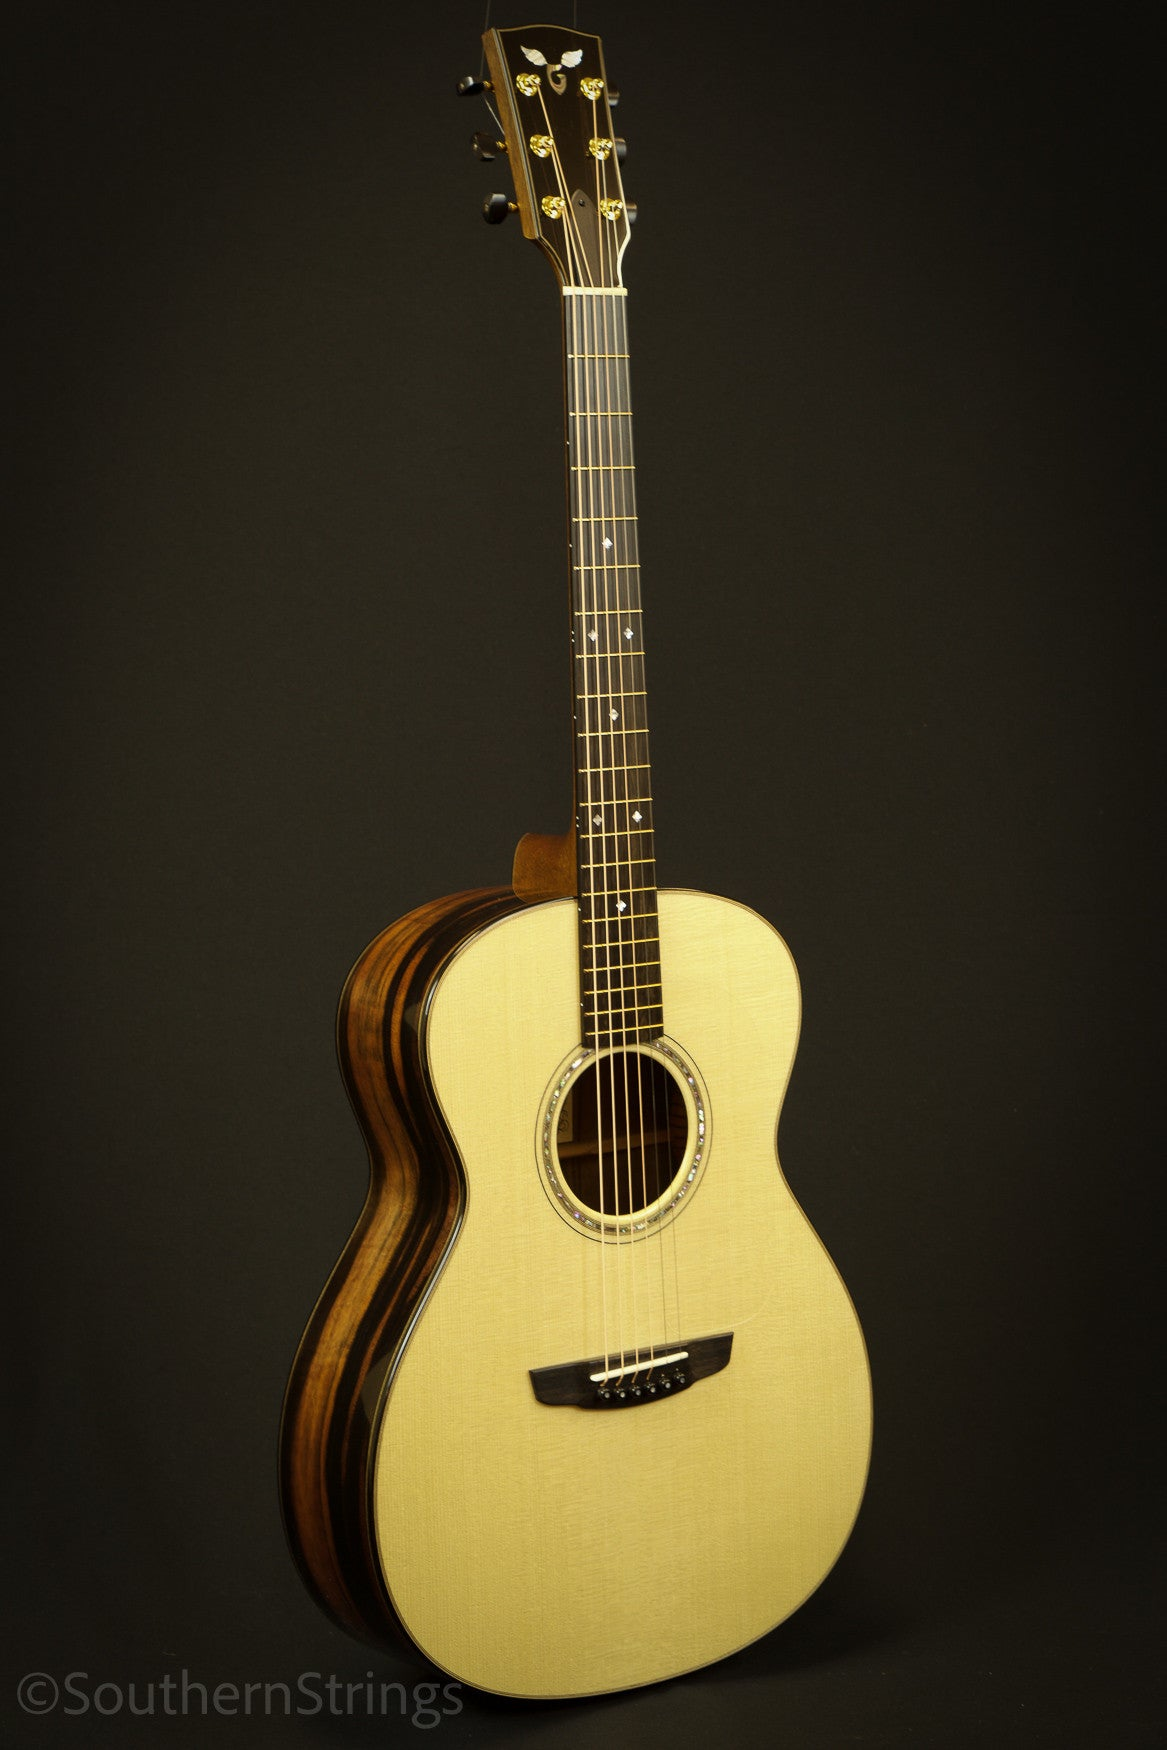 Goodall Macassar Ebony Grand Concert